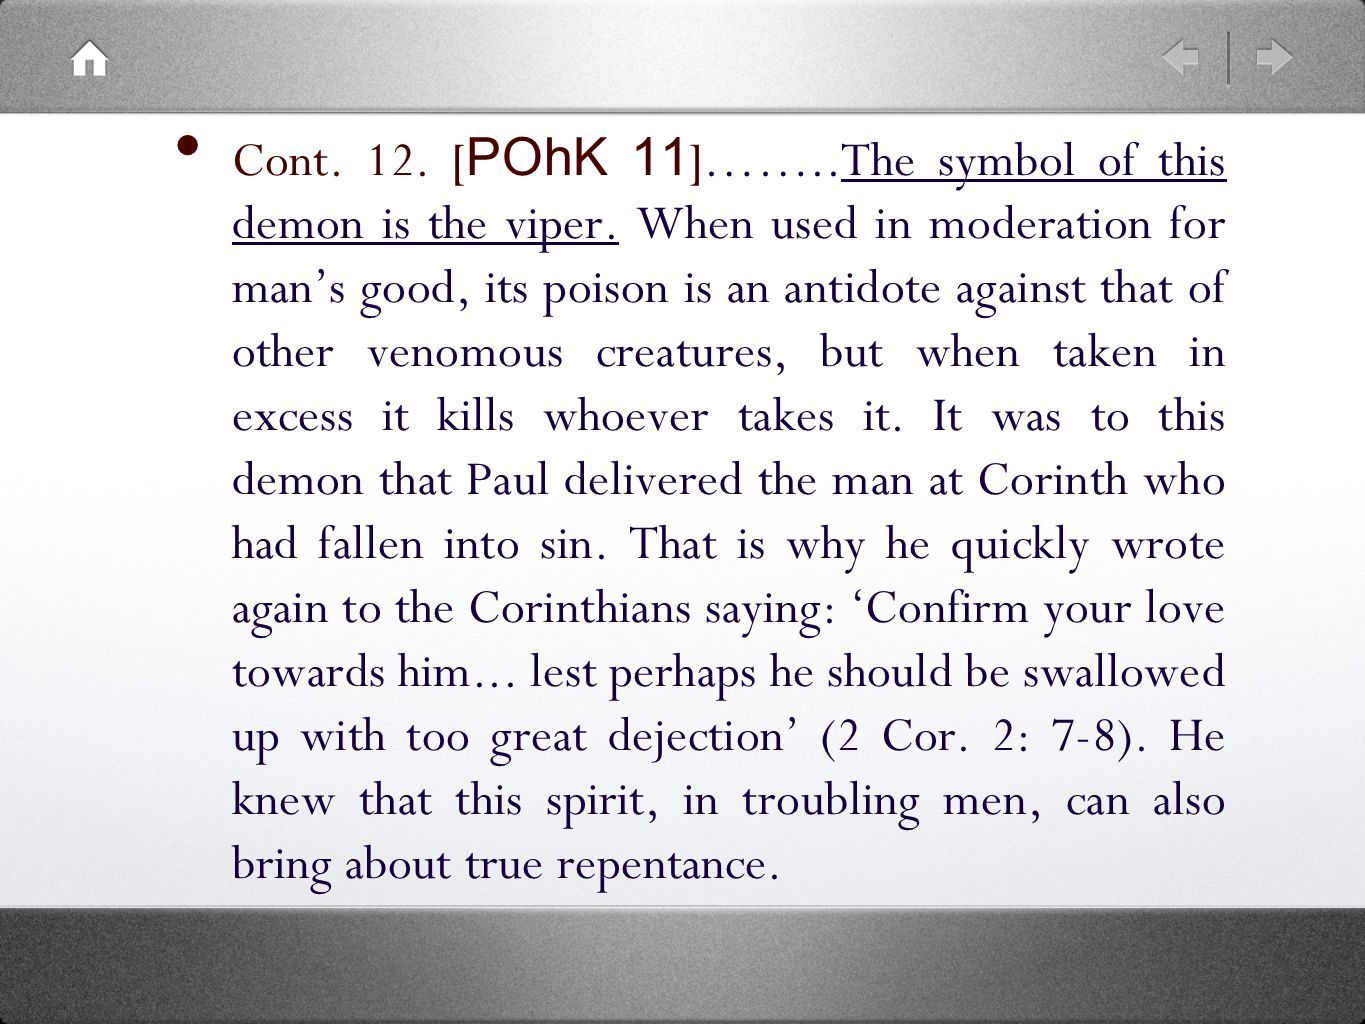 Cont. 12. [ POhK 11 ]……..The symbol of this demon is the viper.